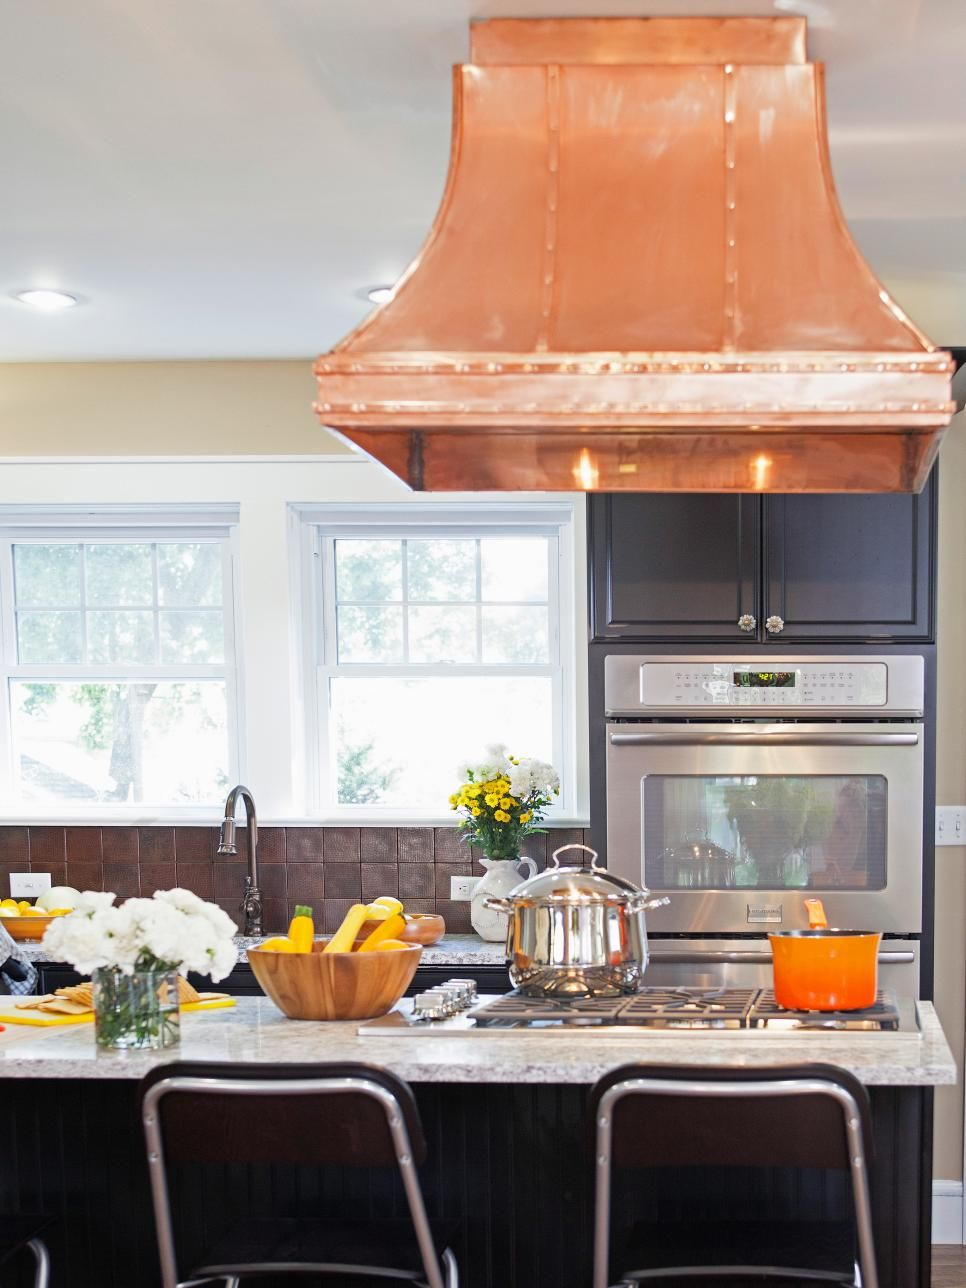 Pictures of kitchen backsplash ideas from for the home pinterest